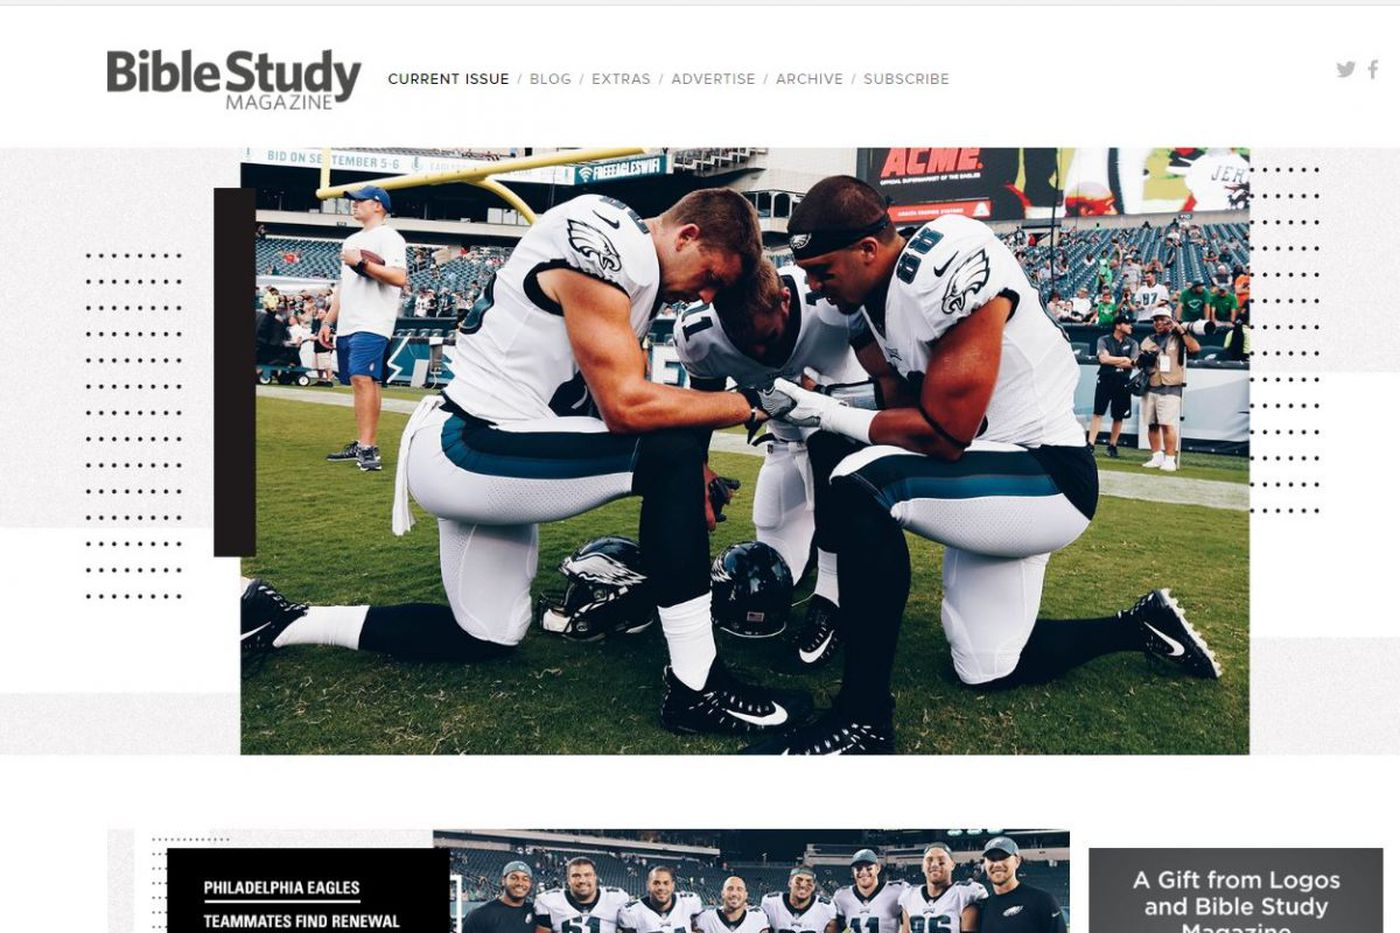 Eagles pray in hot tubs, closets and on vibration plates, players tell Bible Study mag